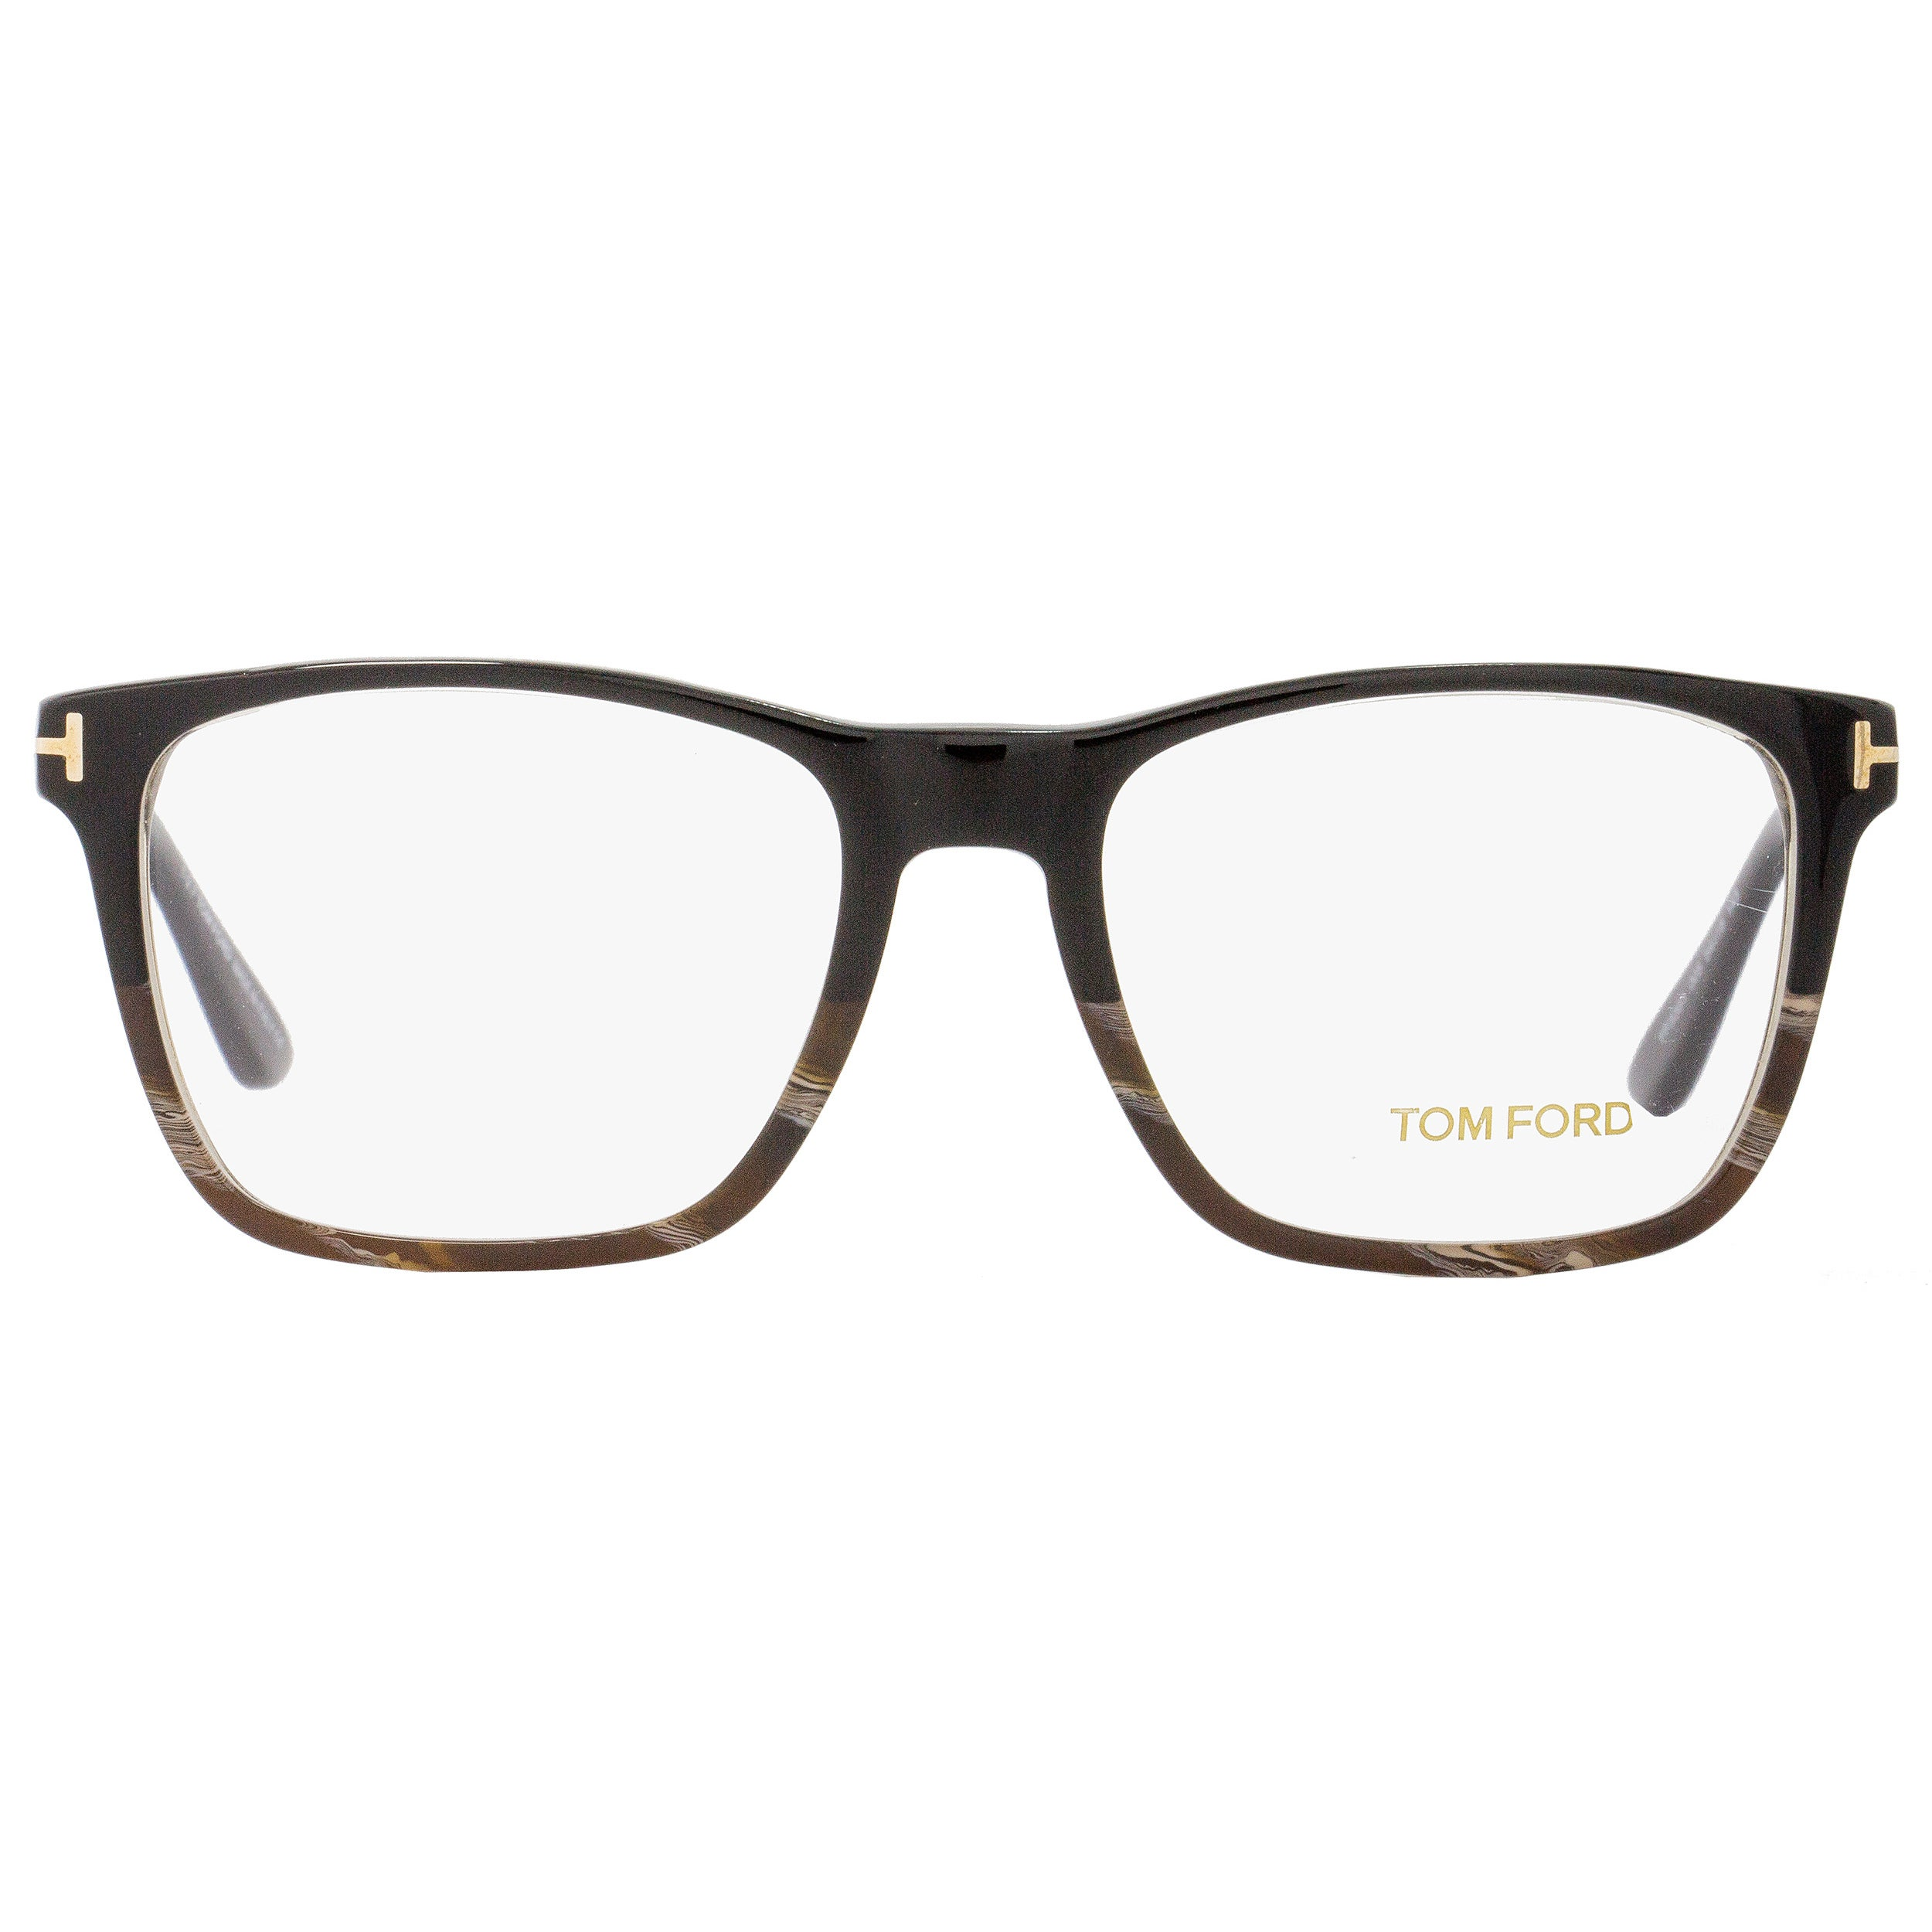 6e02a9b88b3b Shop Tom Ford TF5351 005 Unisex Black Horn Gold 54 mm Eyeglasses - Free  Shipping Today - Overstock - 18778814